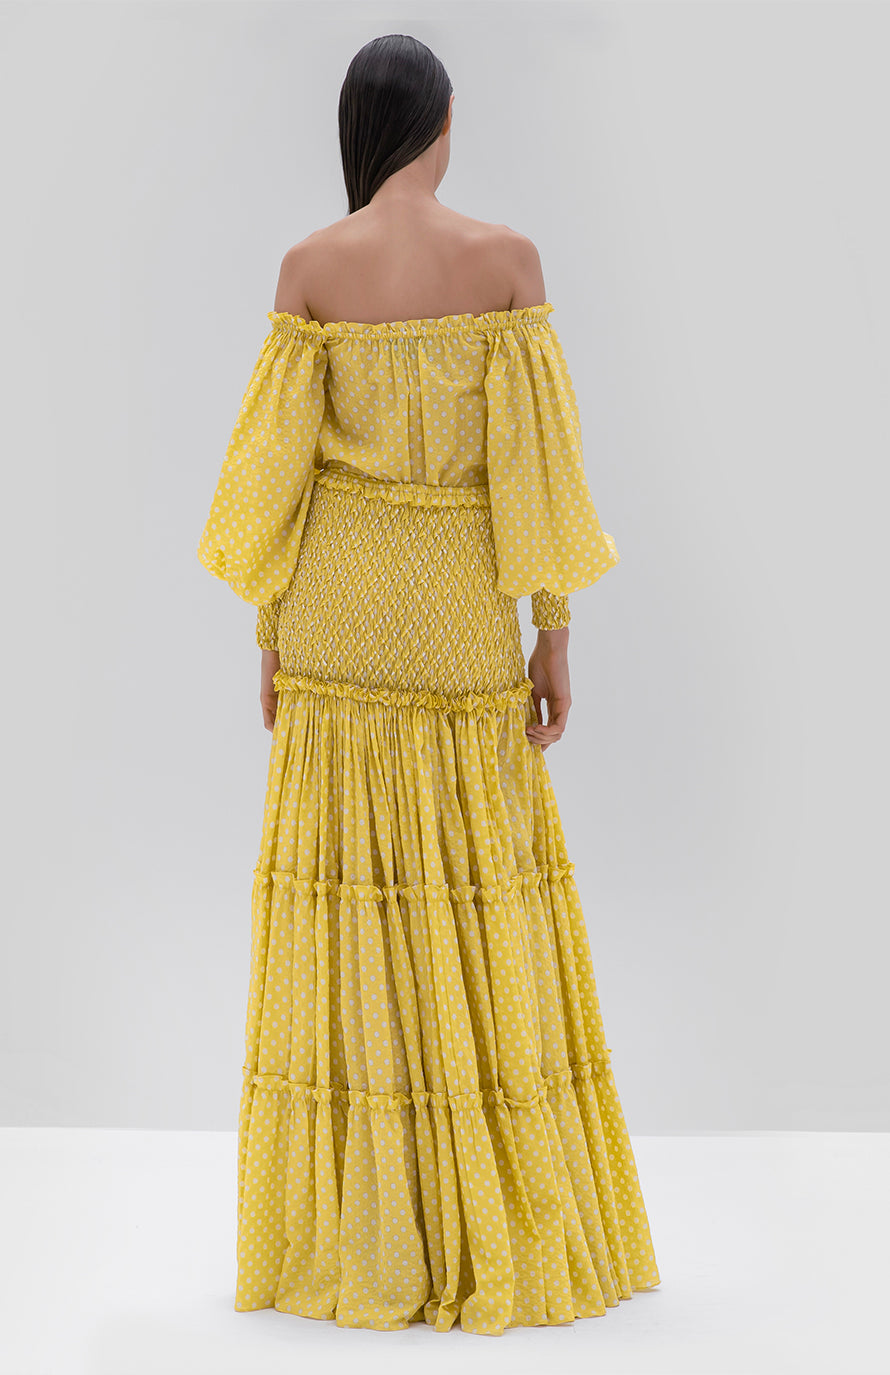 Alexis Thalssa Dress Yellow dot - Rear View